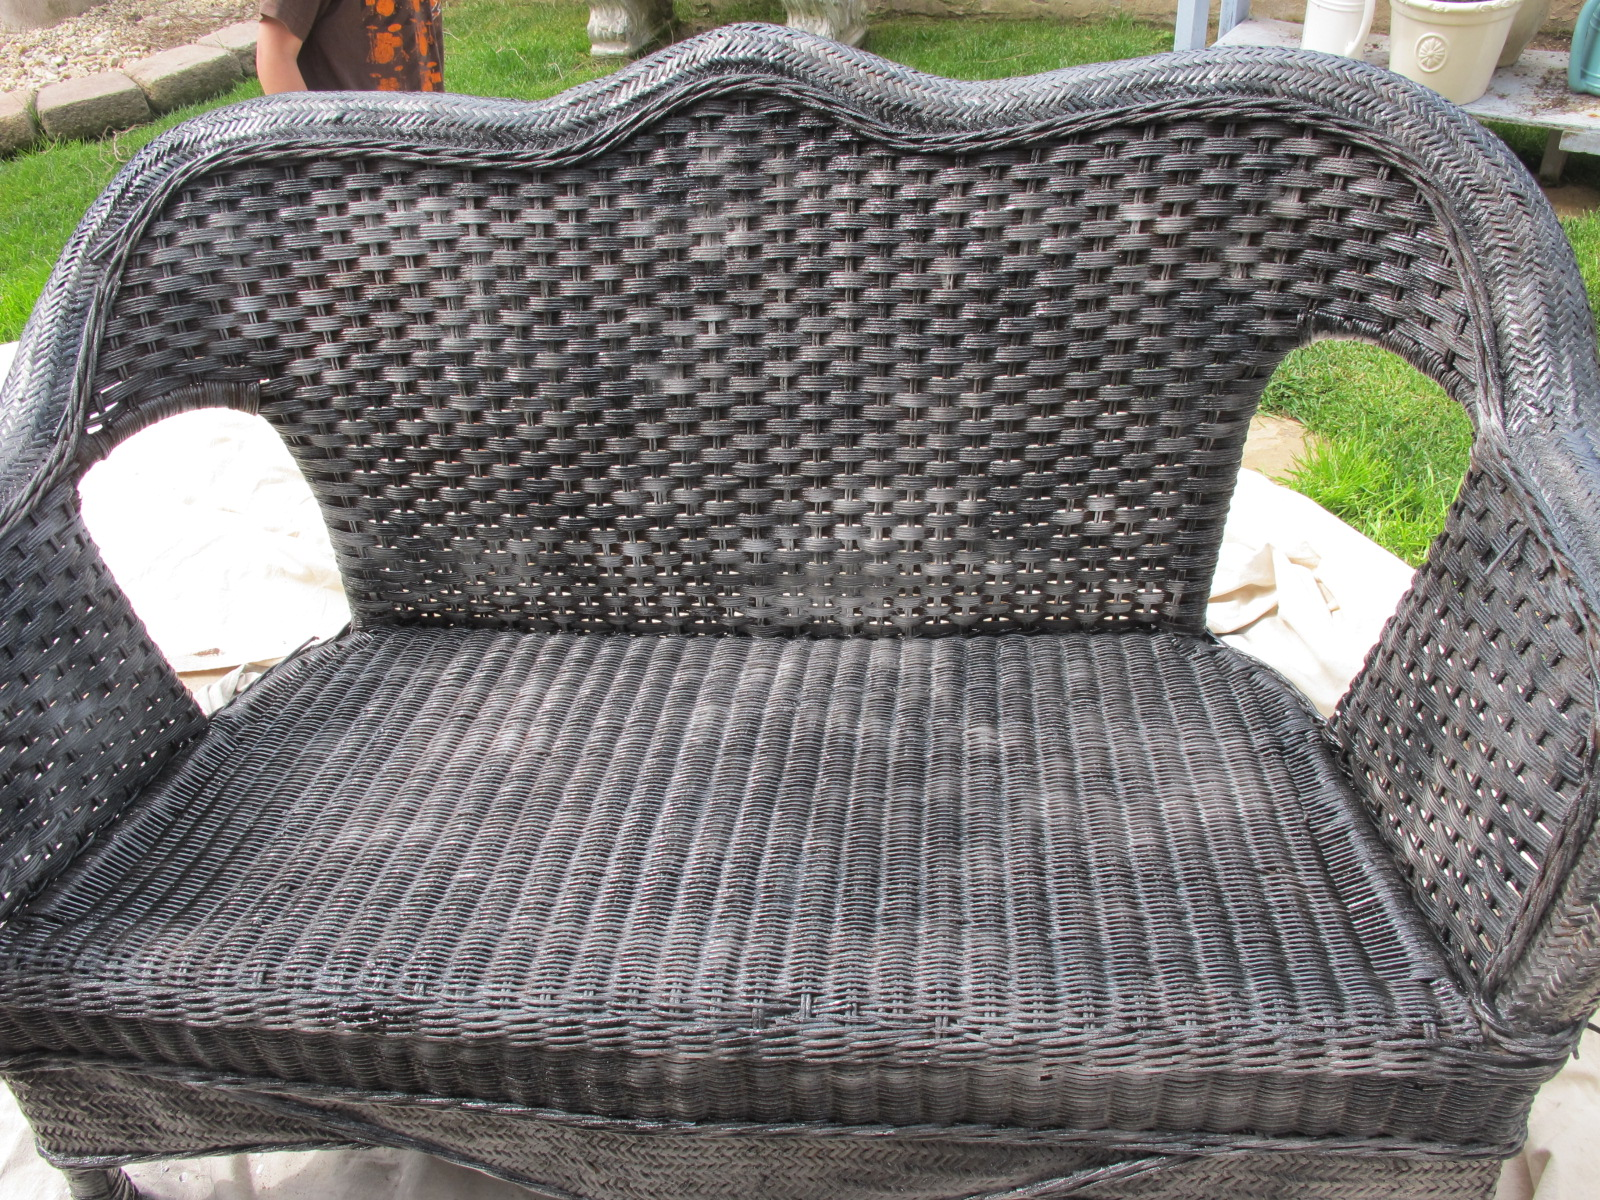 painted wicker furnitureHow to paint wicker furniture